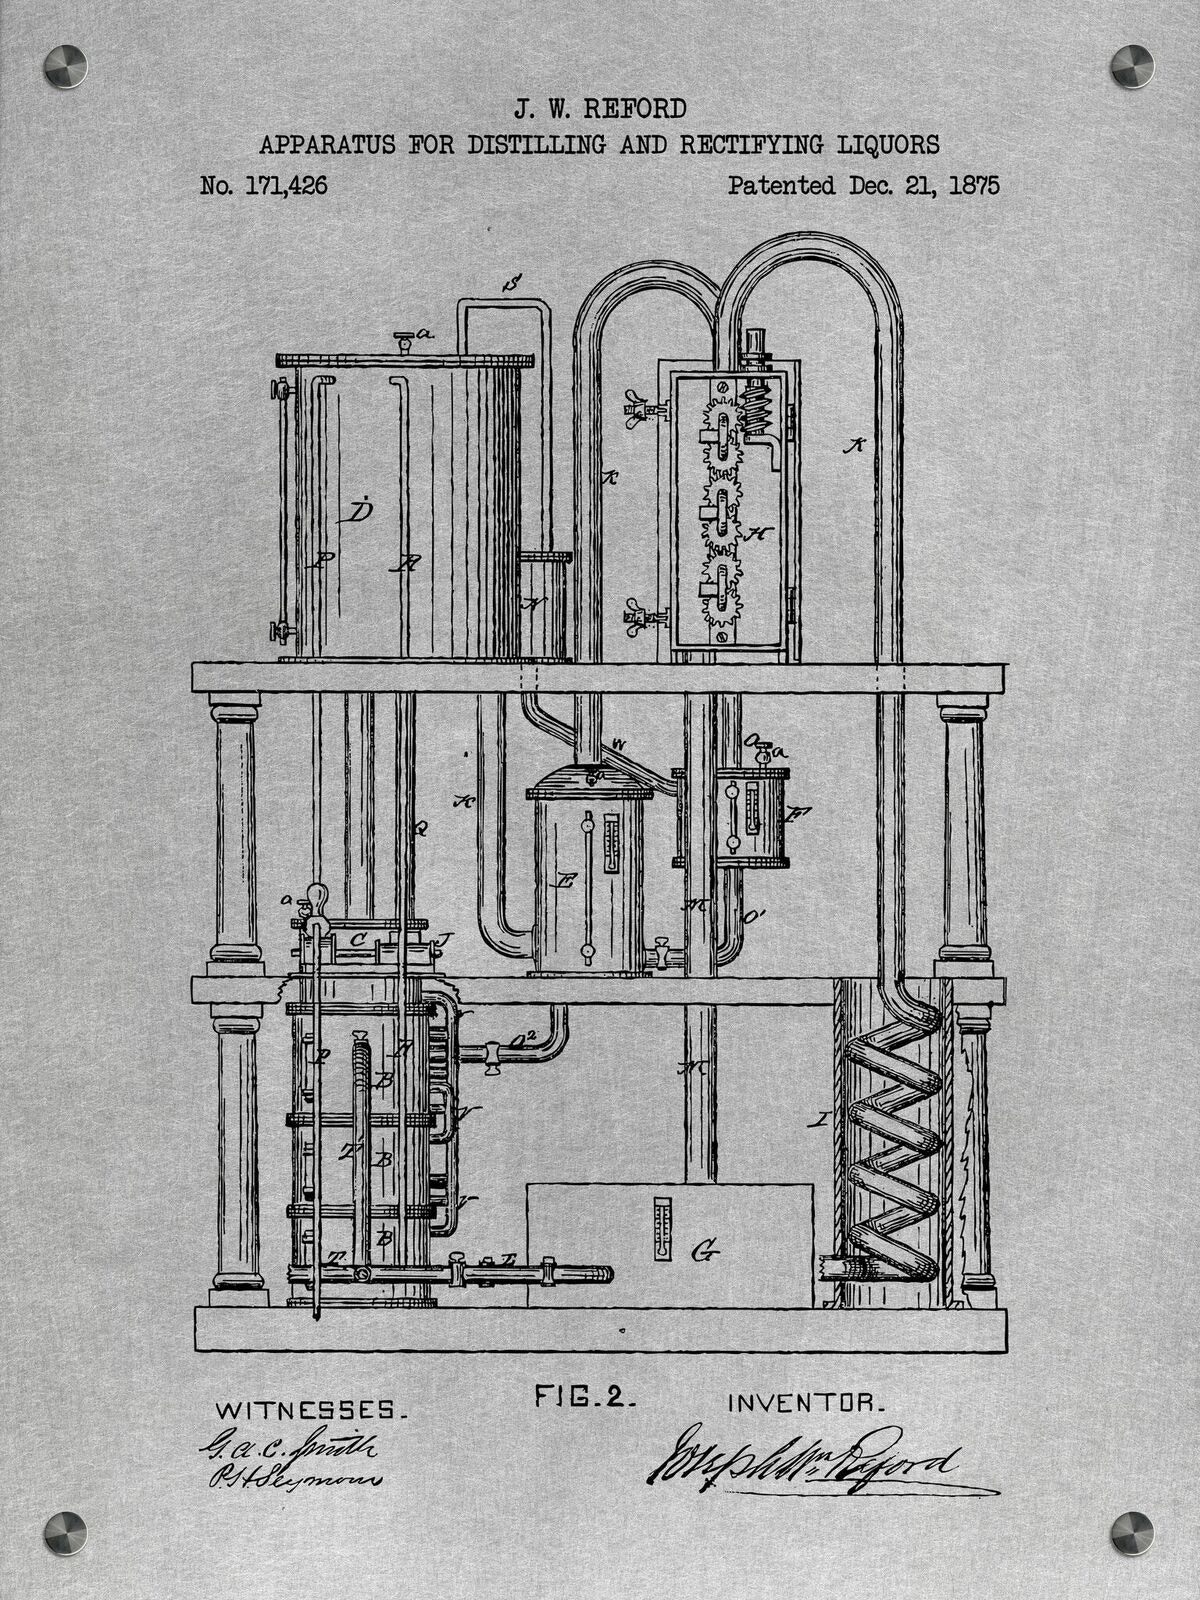 Apparatus for Distilling and Rectifying Liquors